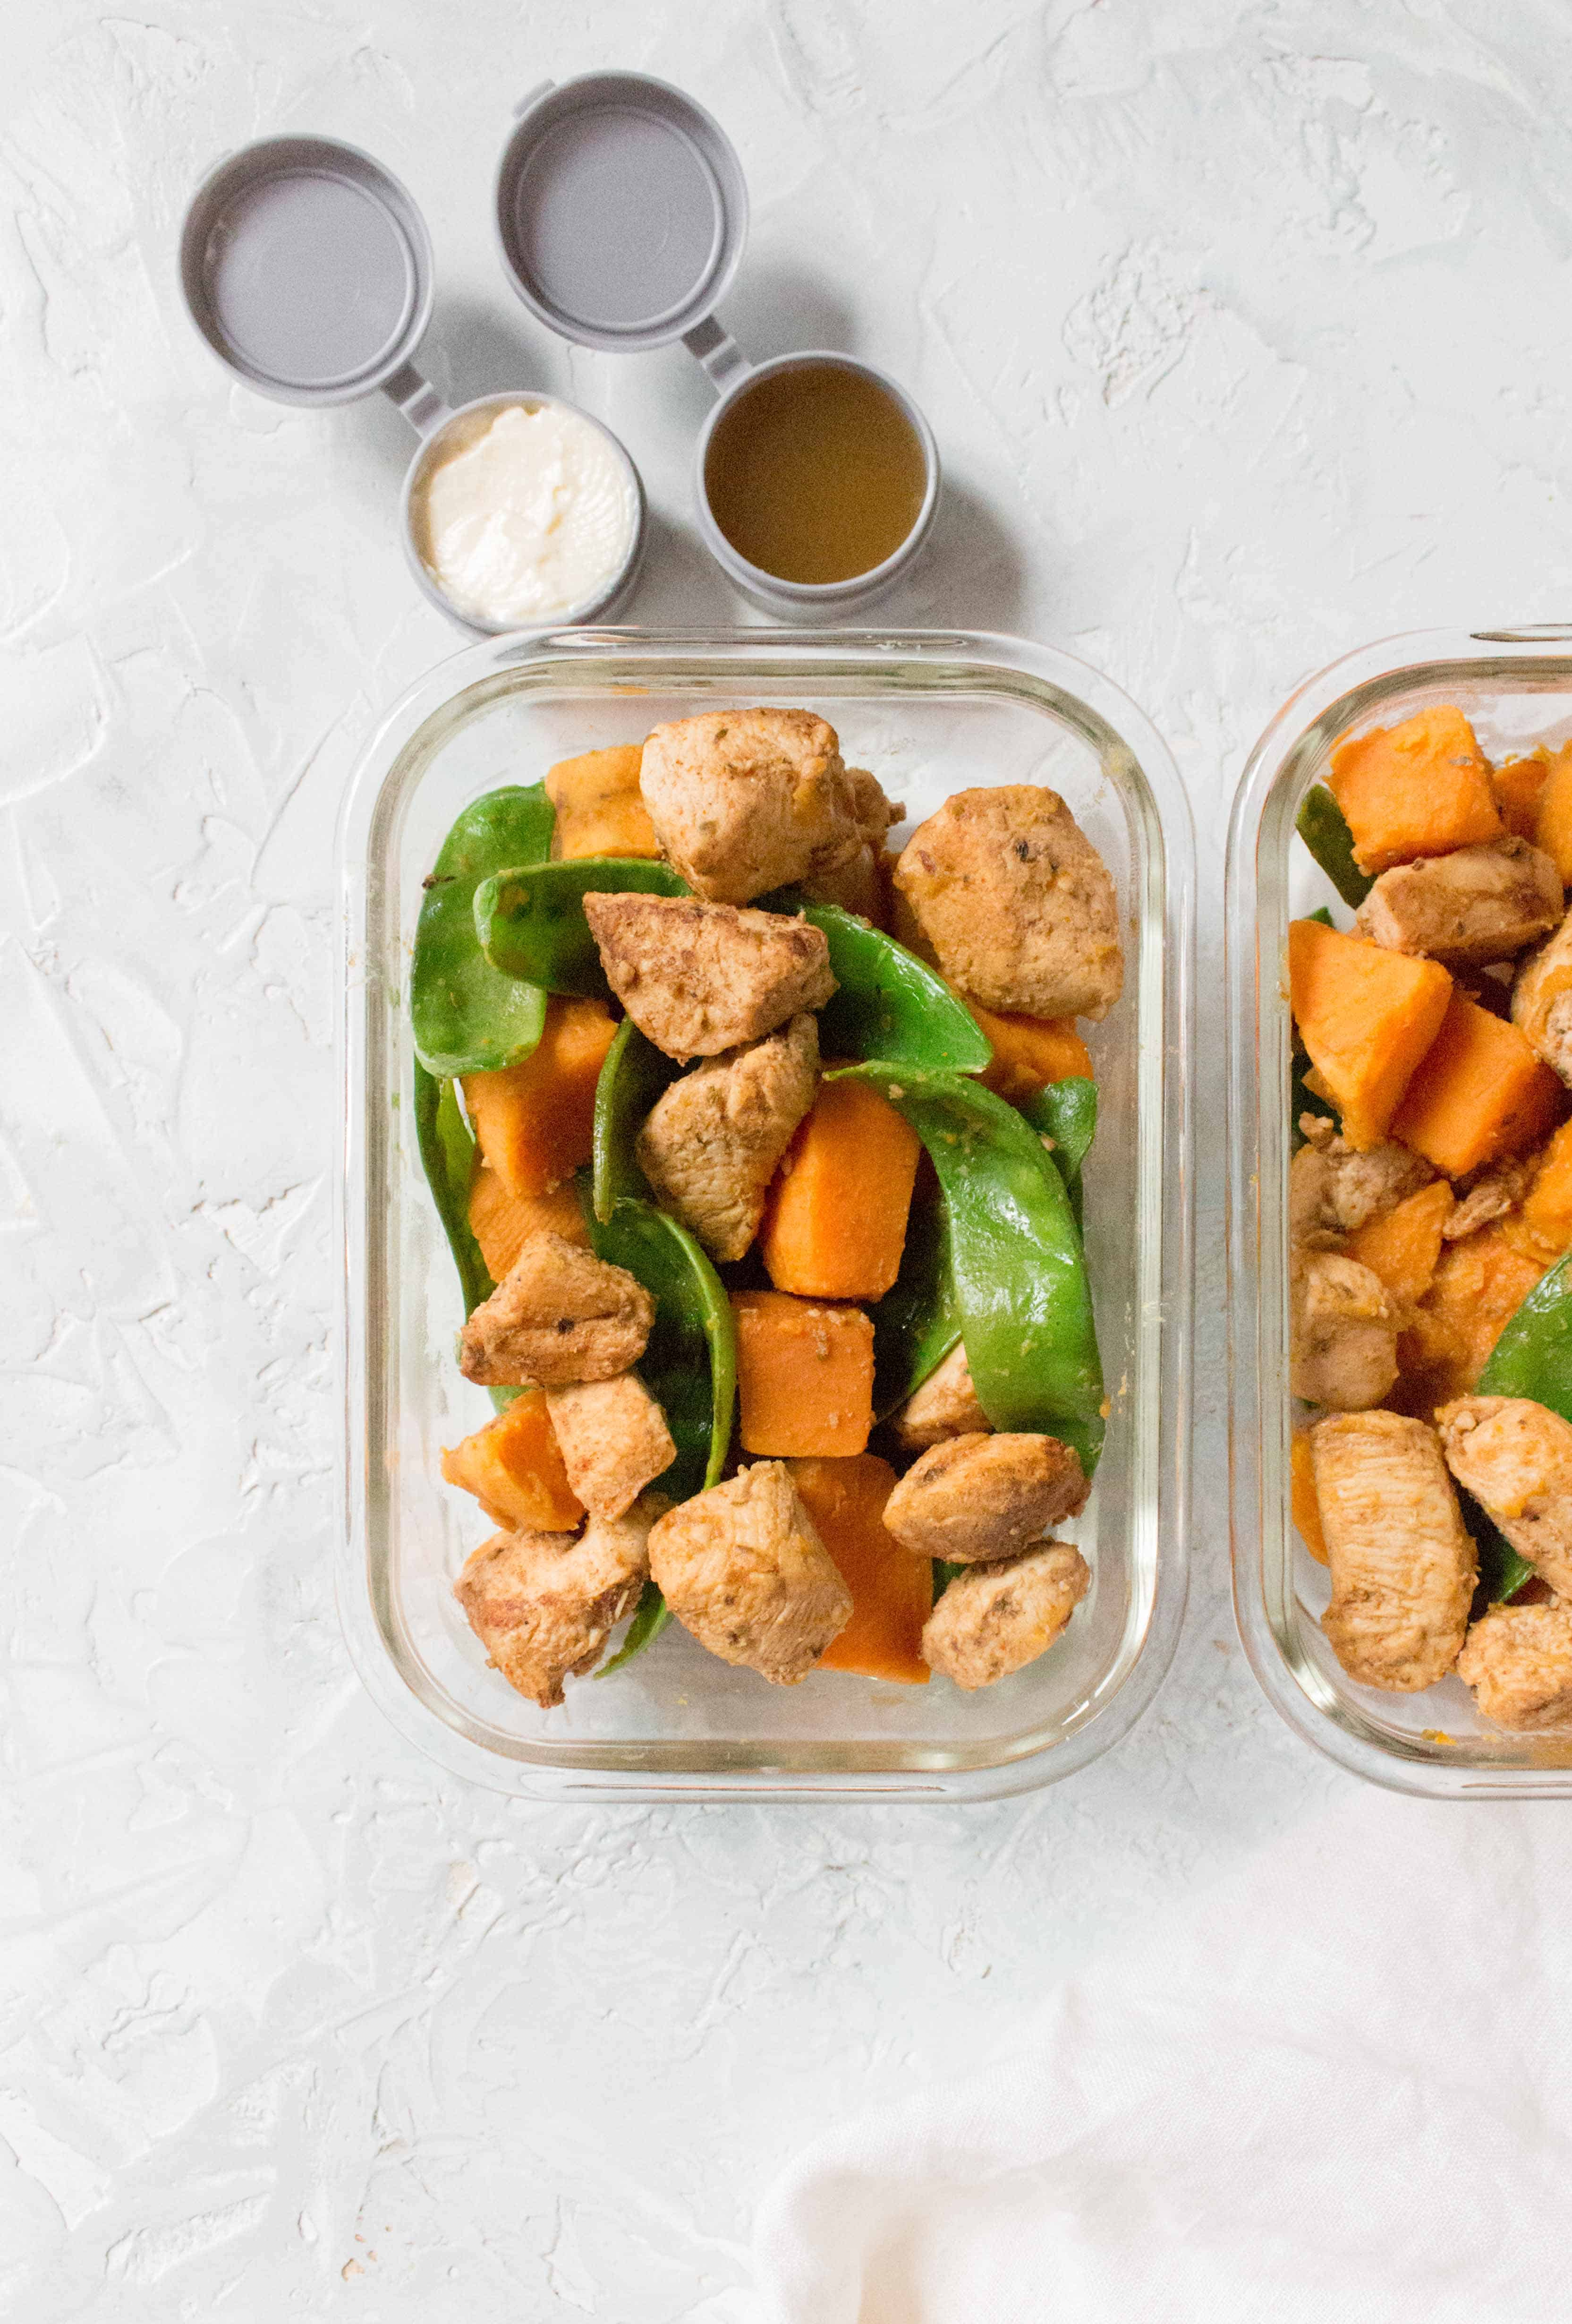 This One Pot Chicken and Vegetable Meal Prep is so easy to make takes under an hour to put together!